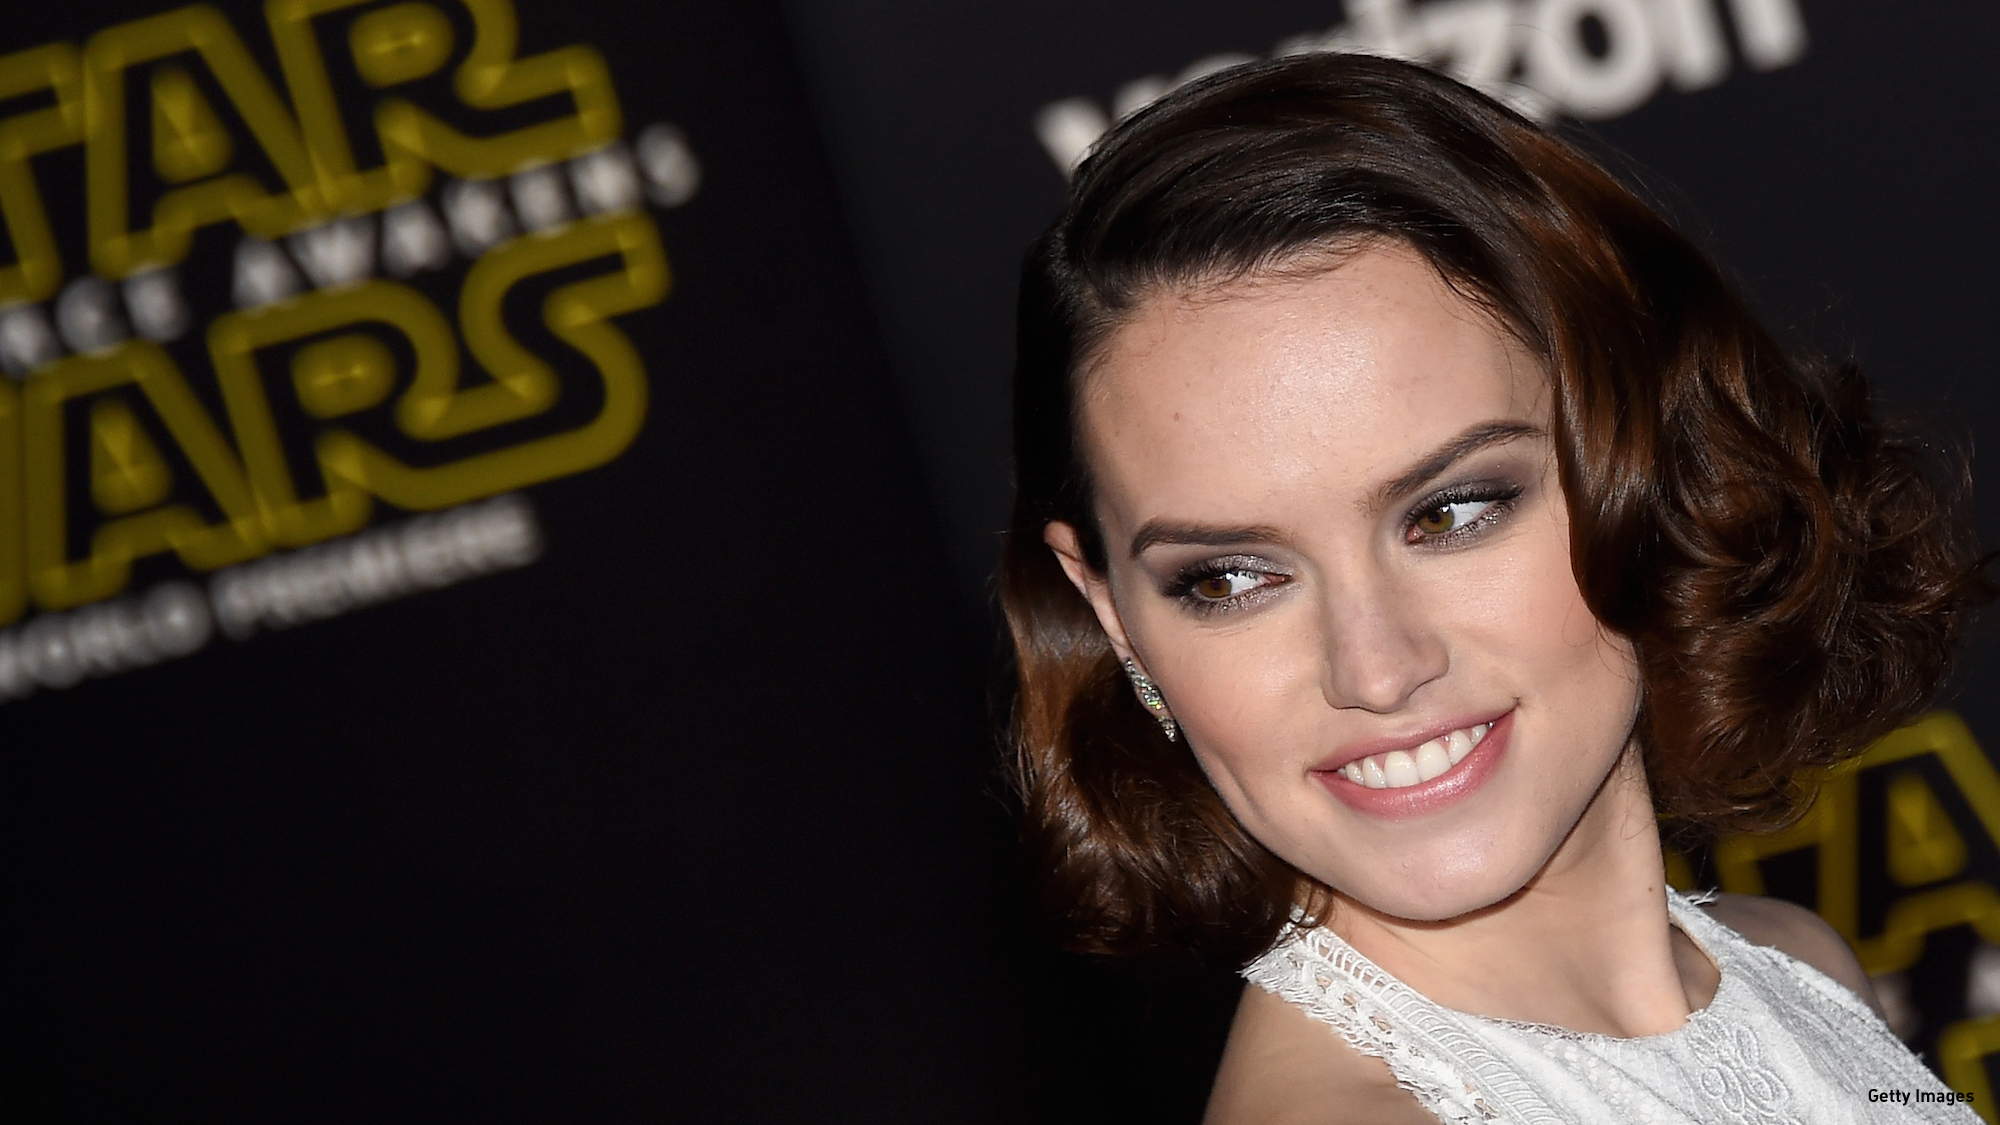 Daisy Ridley will return for 'Star Wars: Episode VIII'. (Photo: Ethan Miller/Getty Images)